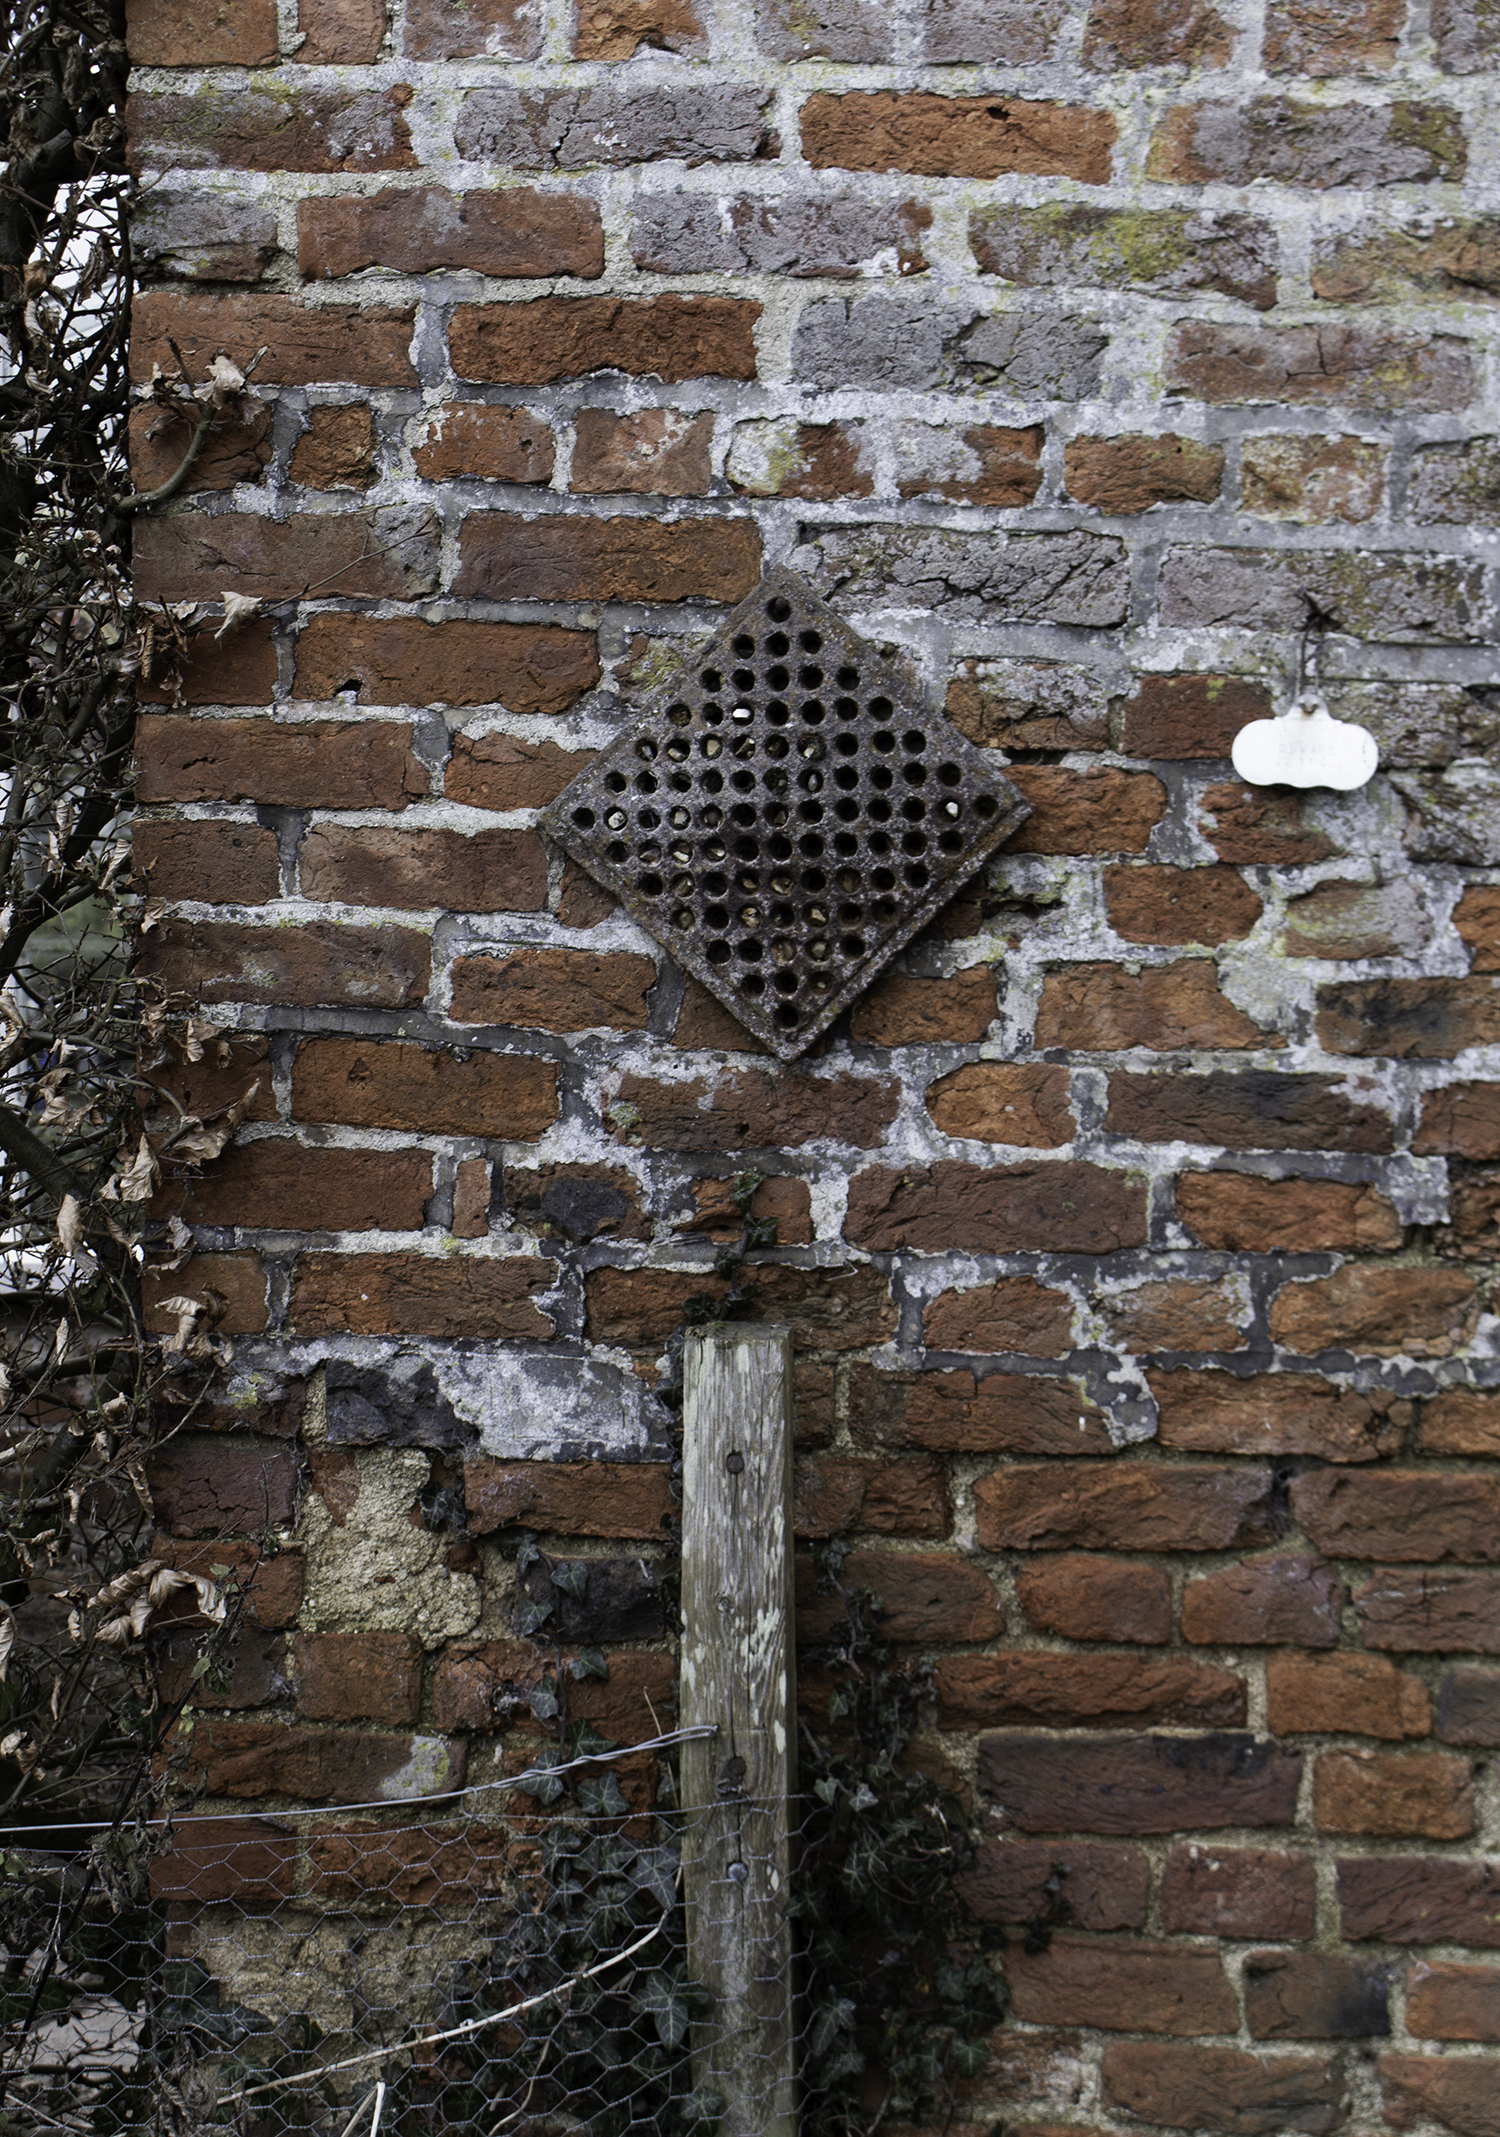 A bee hotel?